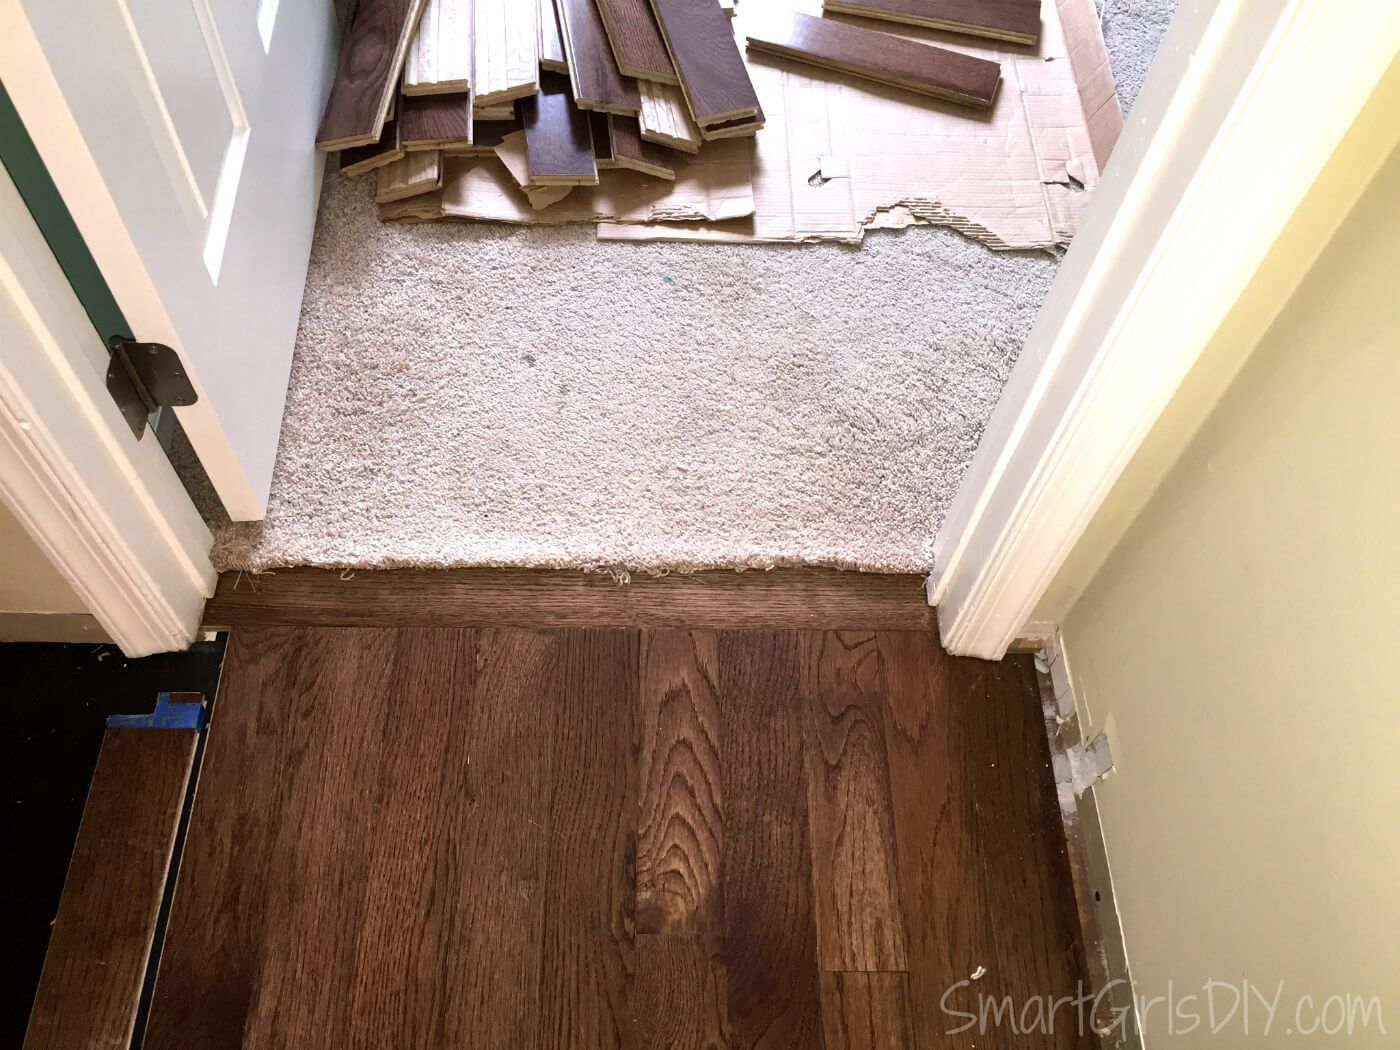 All about The New Wood Flooring throughout Our House! in